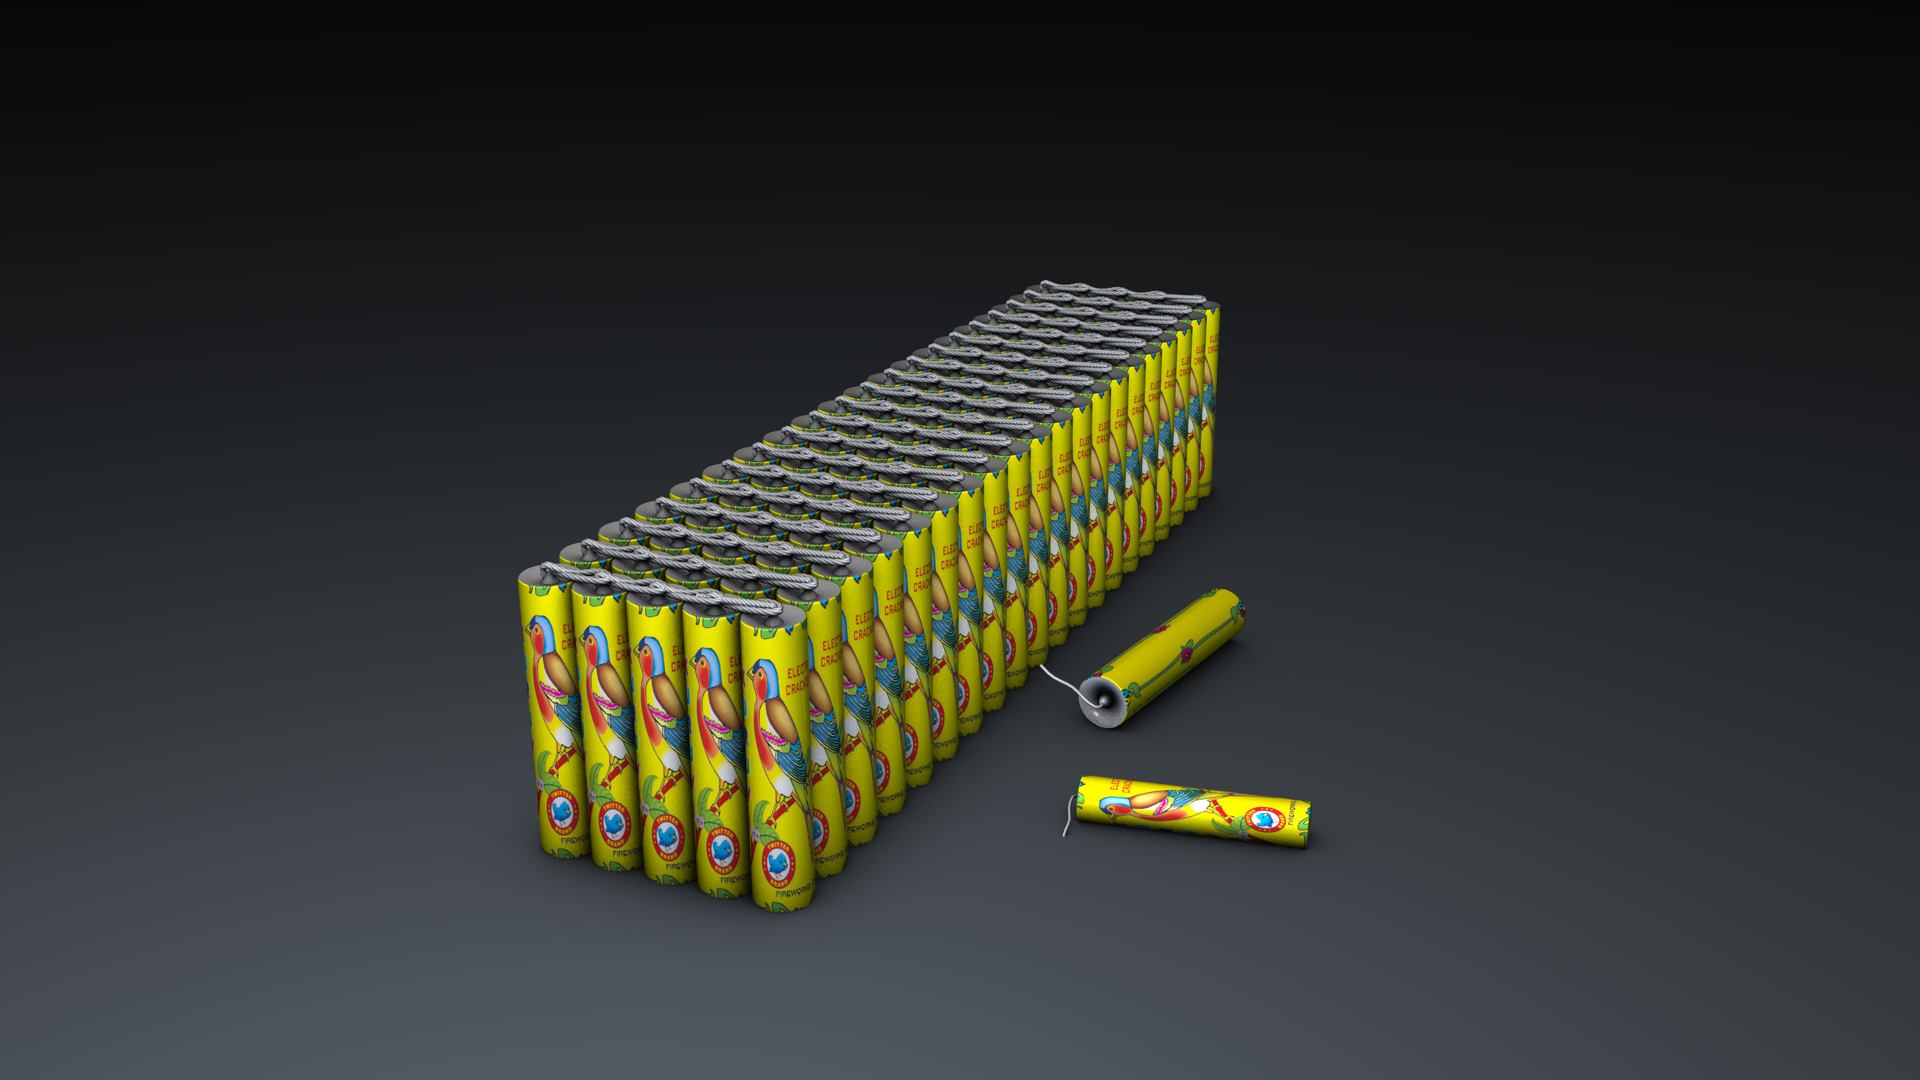 Kuruvi Crackers Bundle Cinema 4d model Free Download